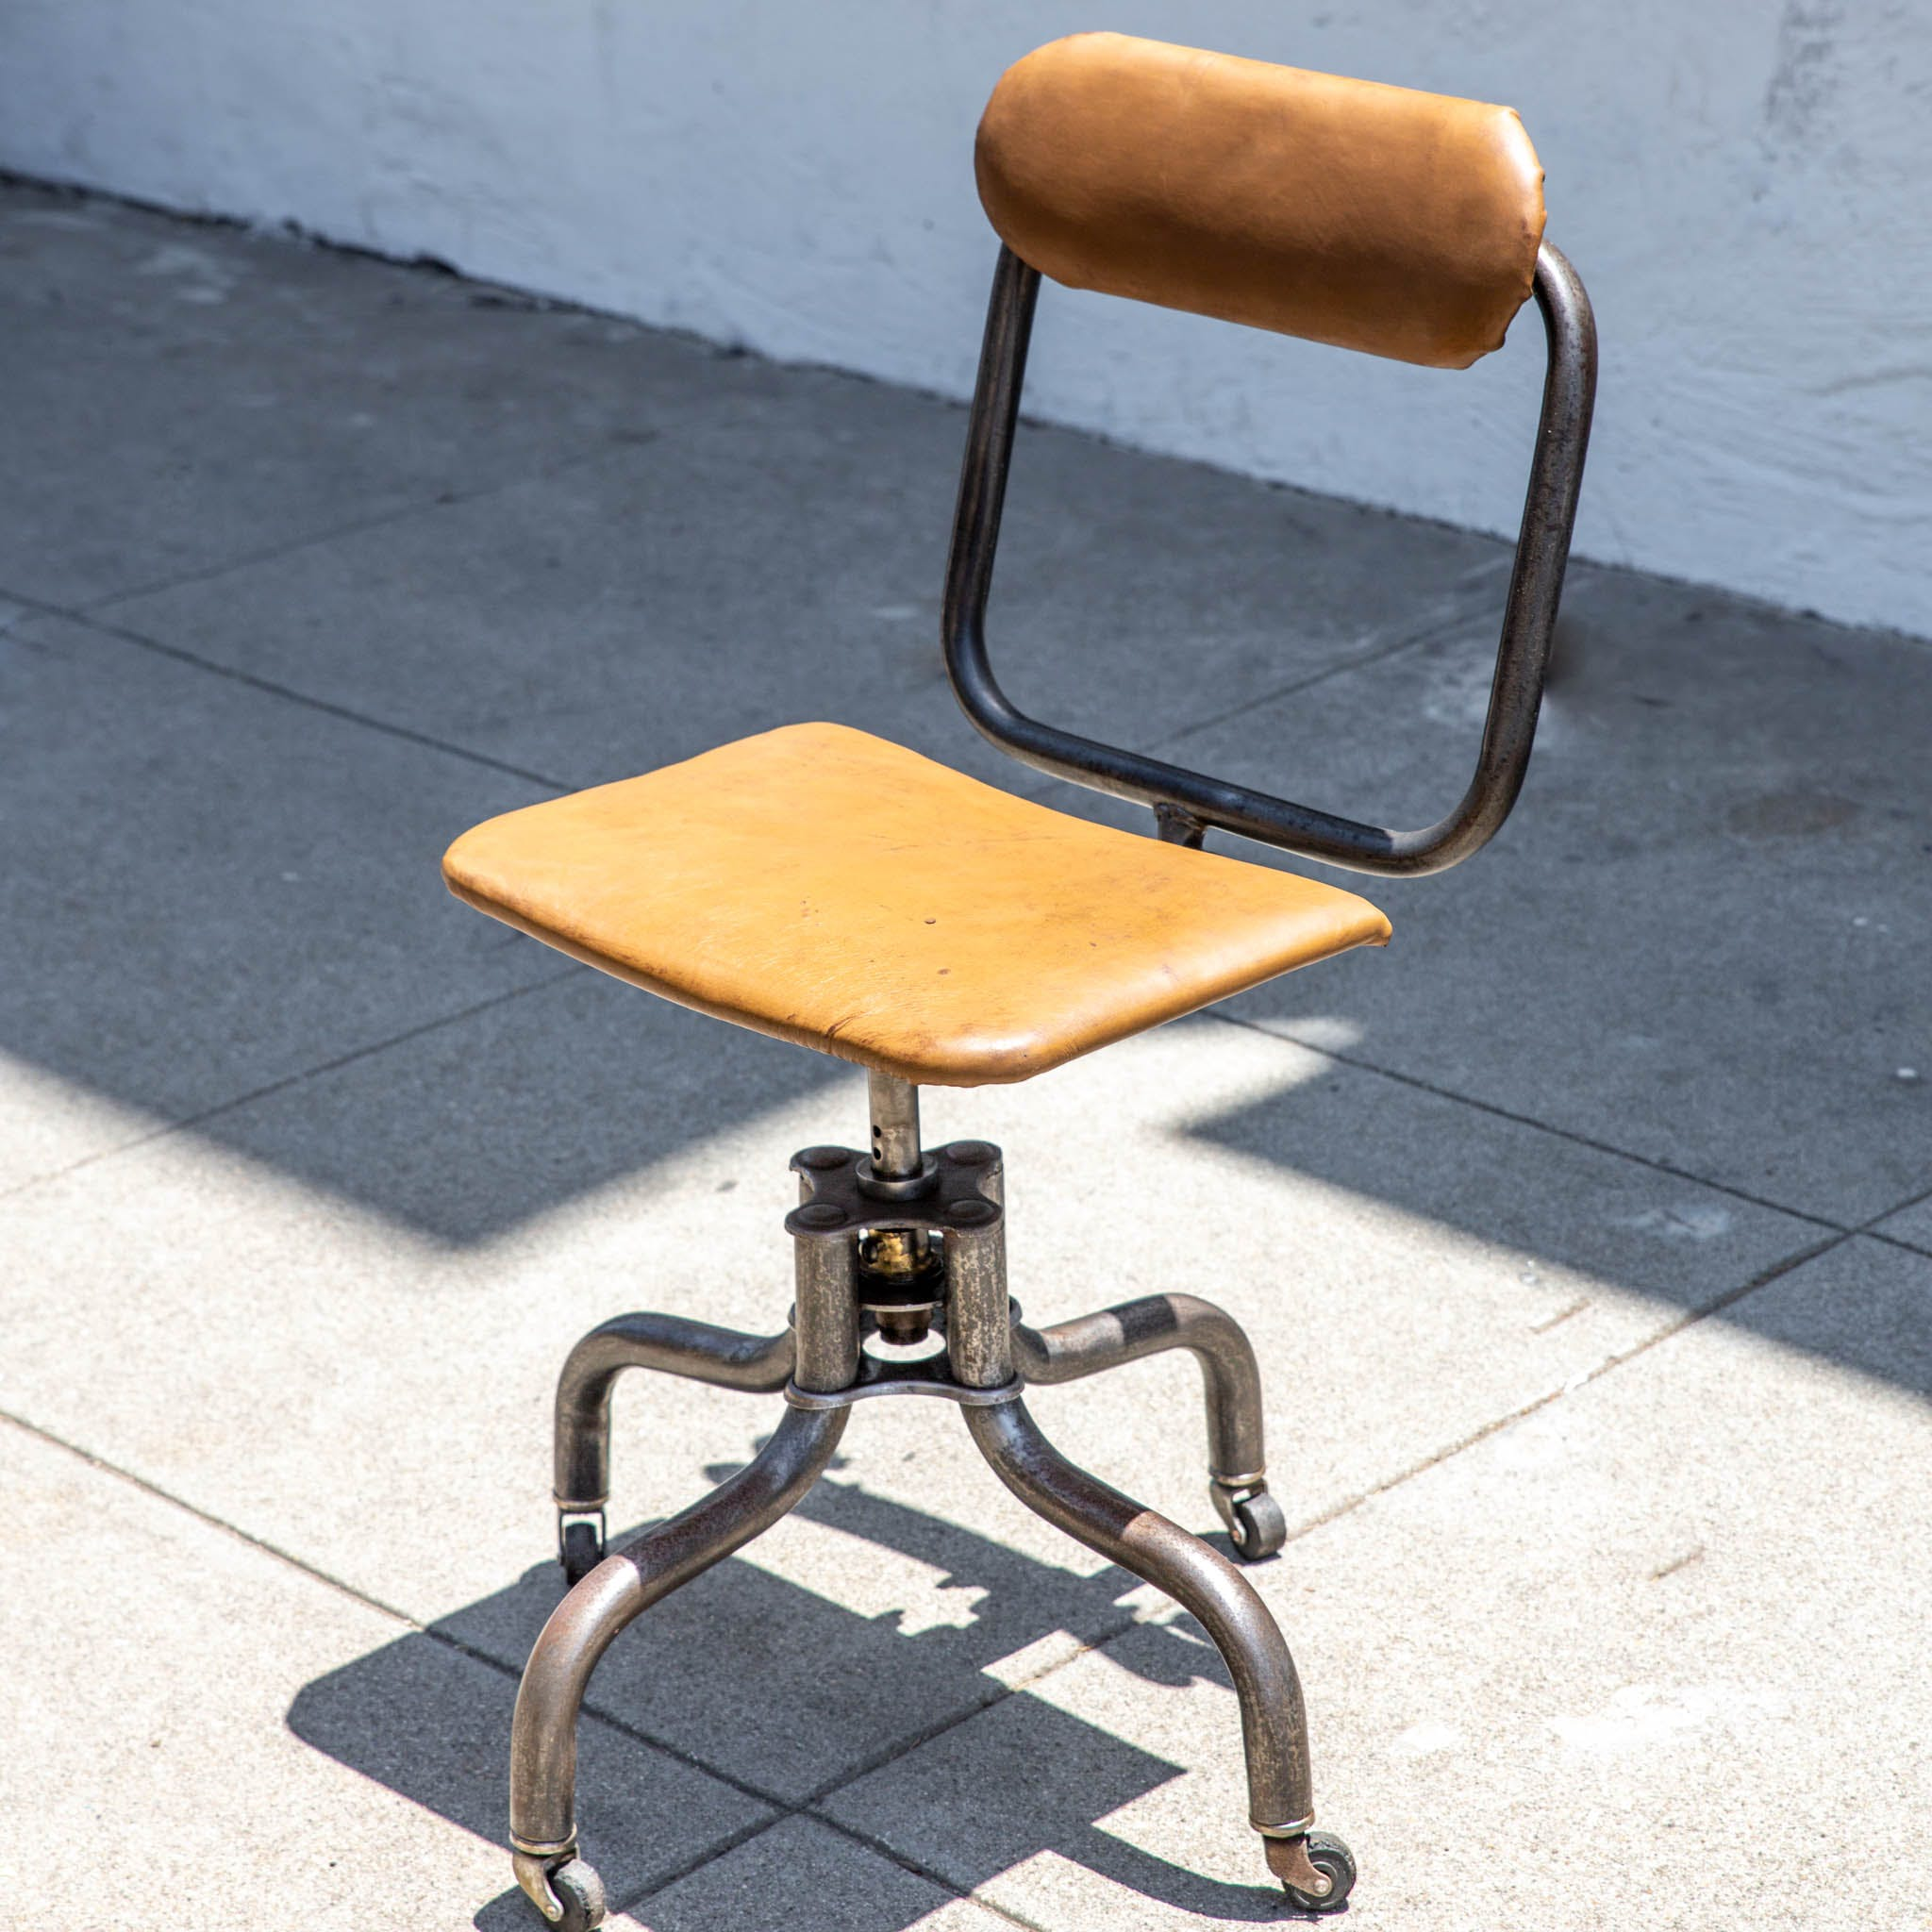 Vintage Industrial Leather Swivel Desk Chair By Fritz Cross